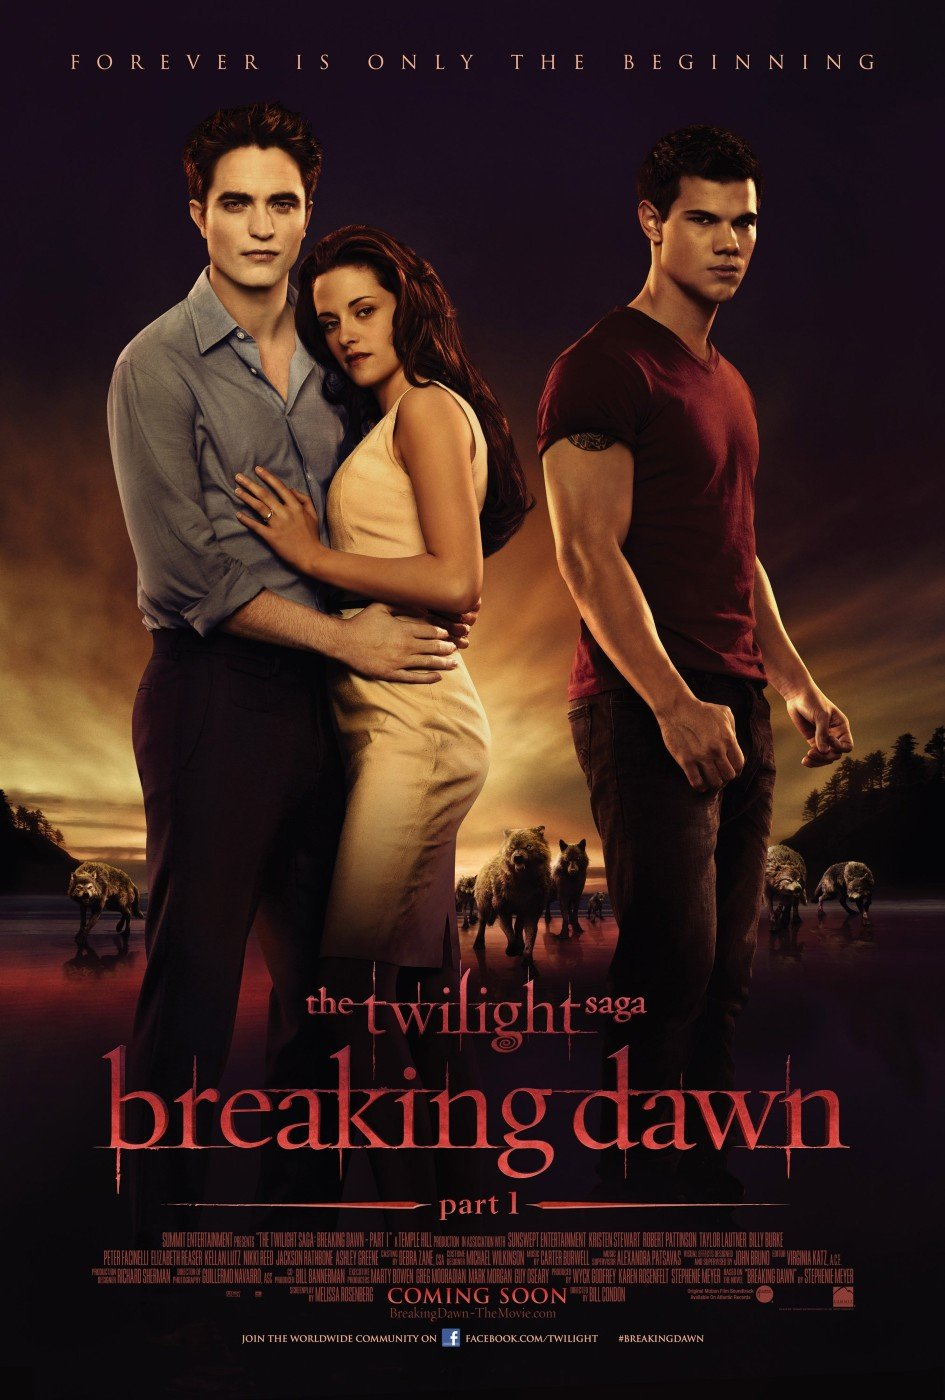 dal-libro-al-film-breaking-dawn-parte-1